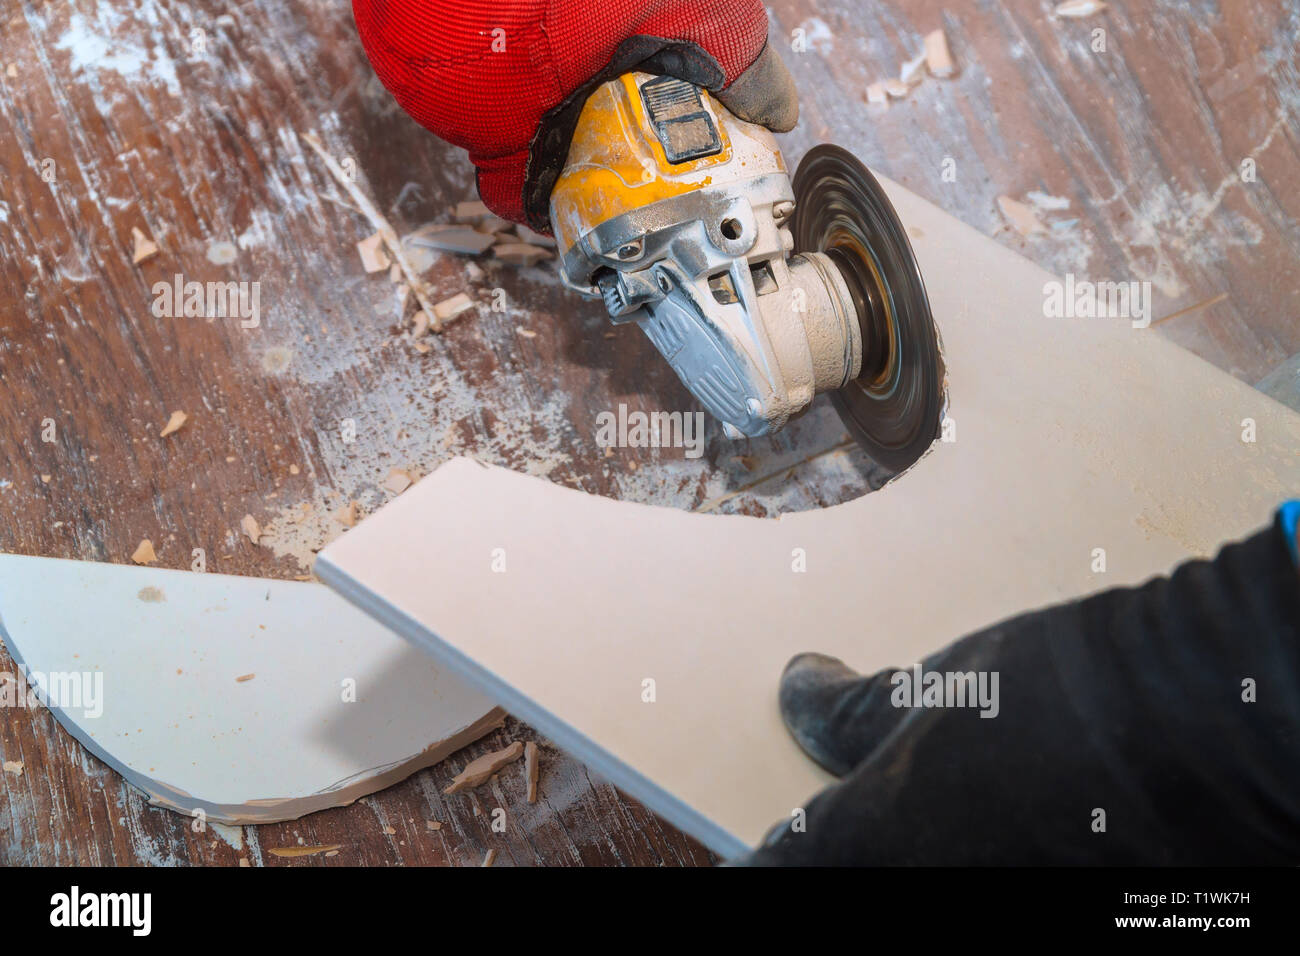 https www alamy com worker hand cutting ceramic floor paving tile with electric angle grinder image242123717 html